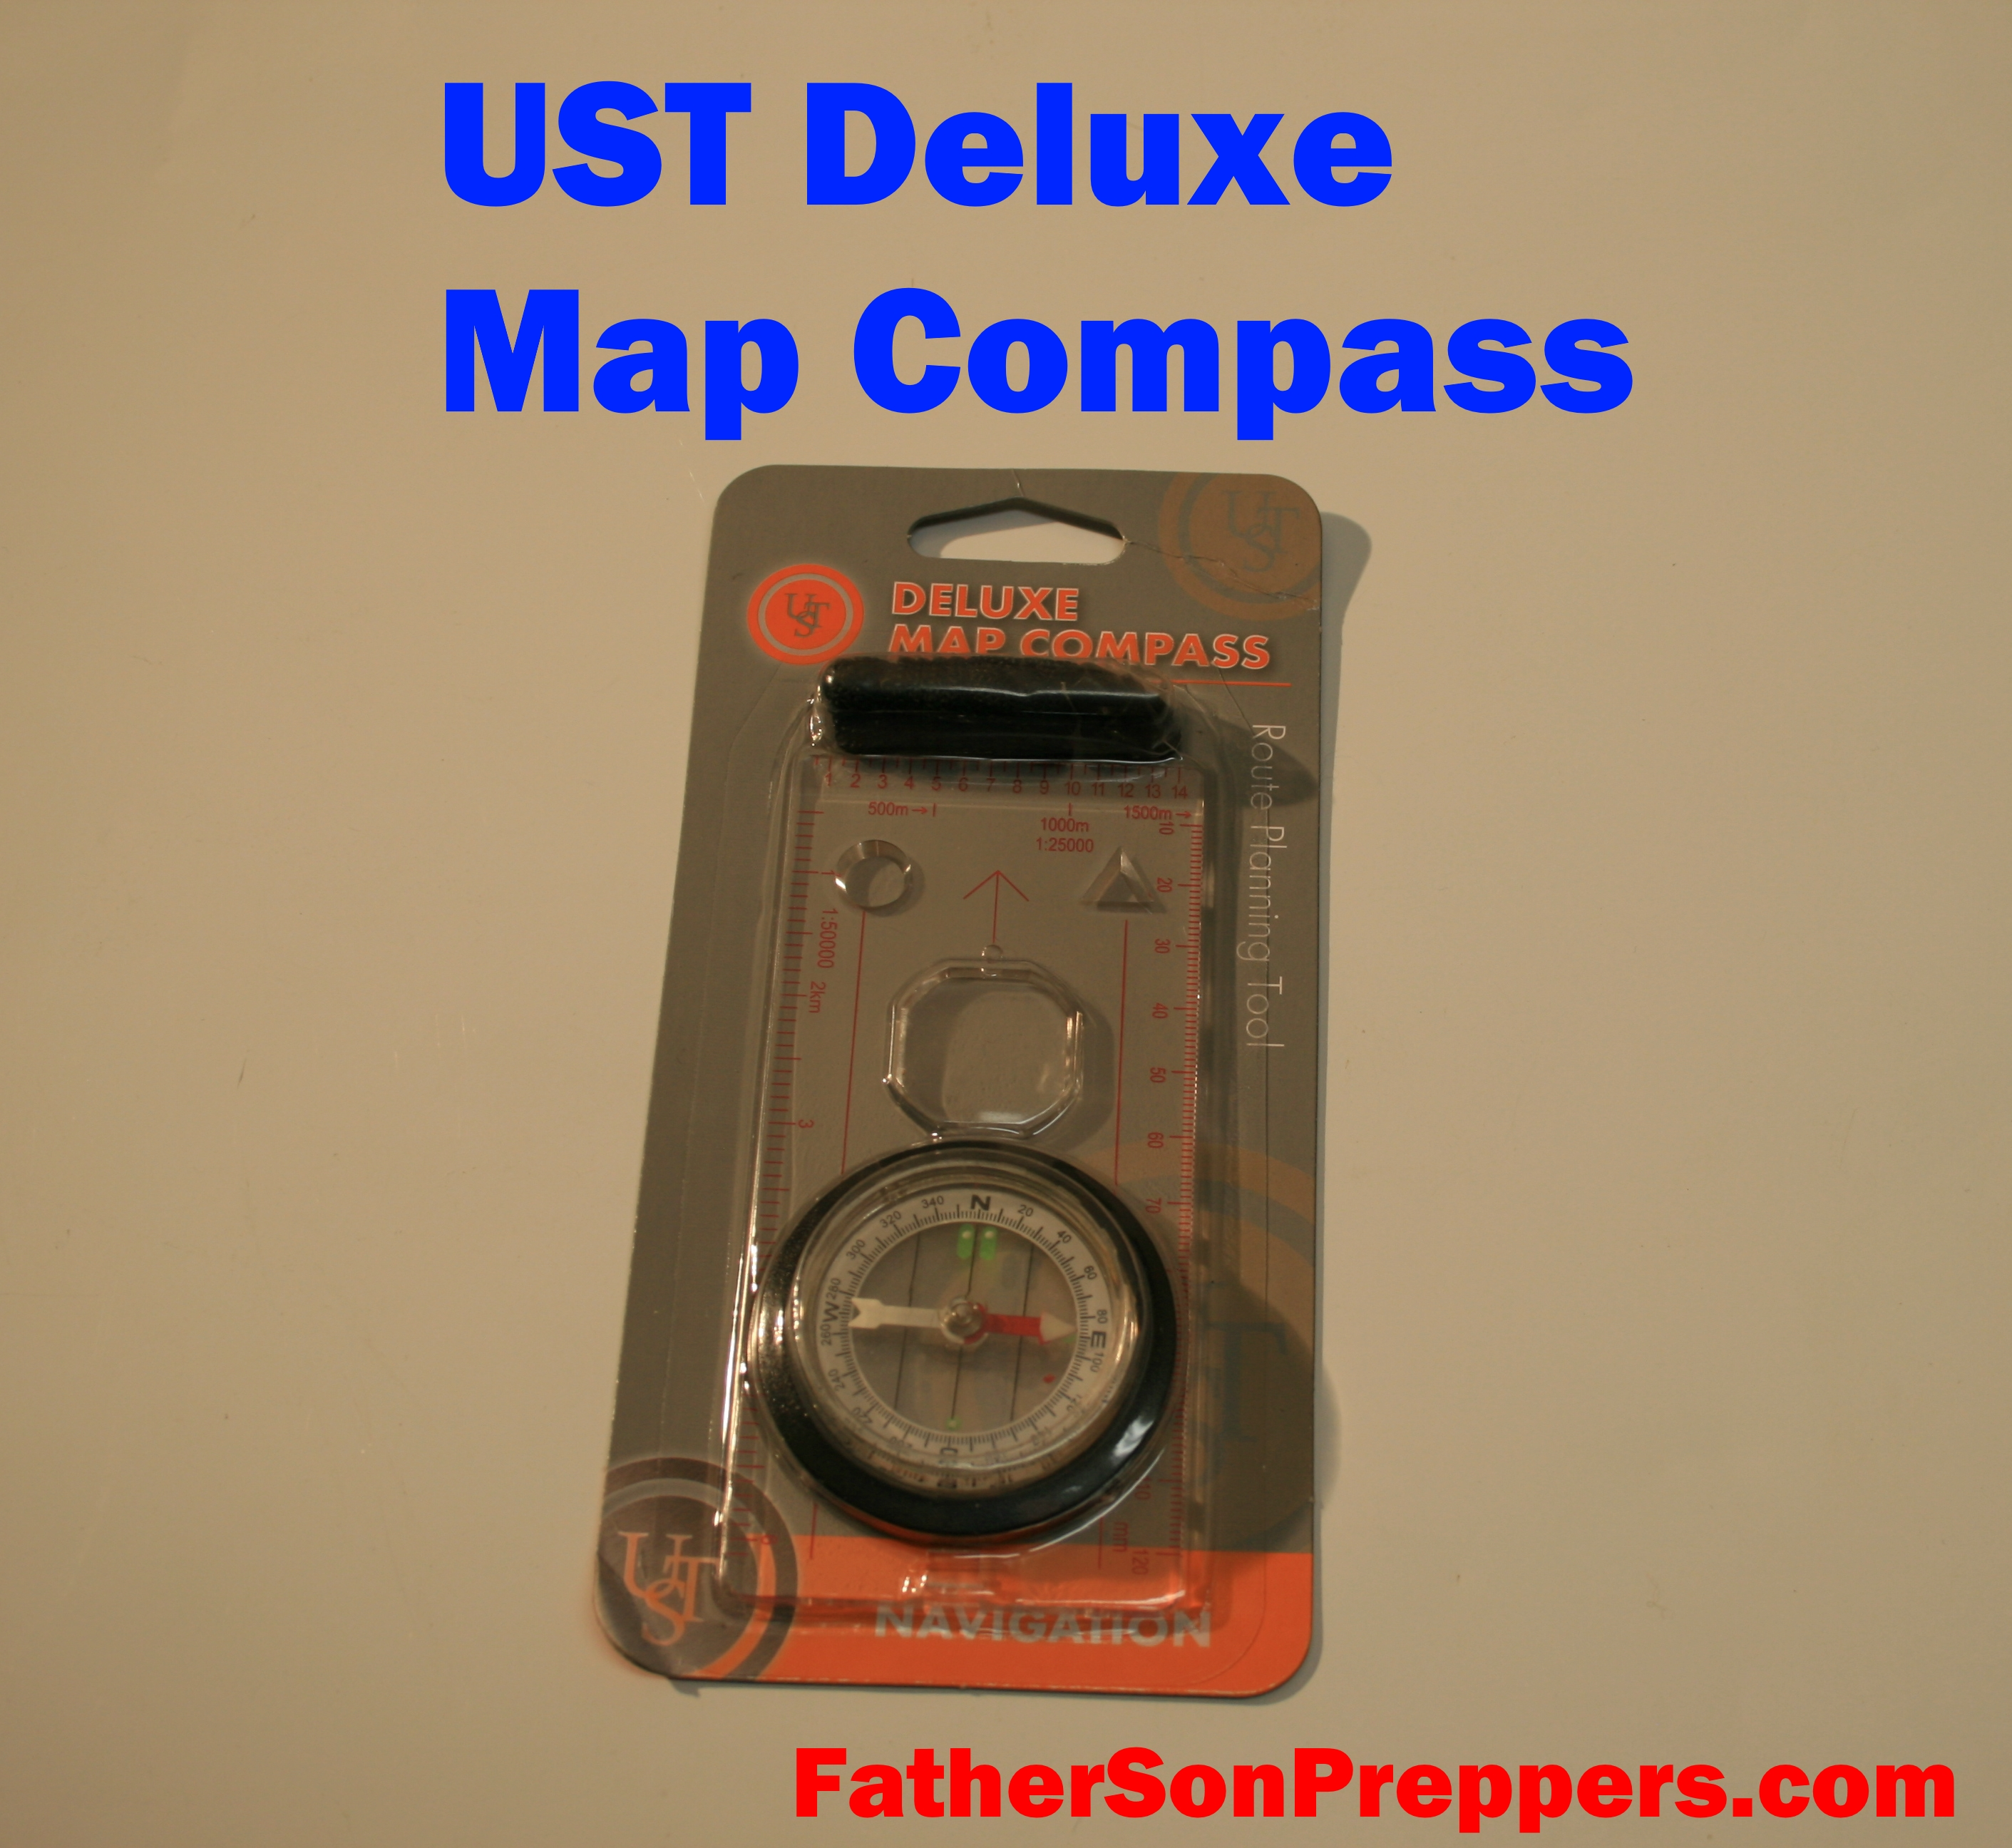 UST deluxe map compass main